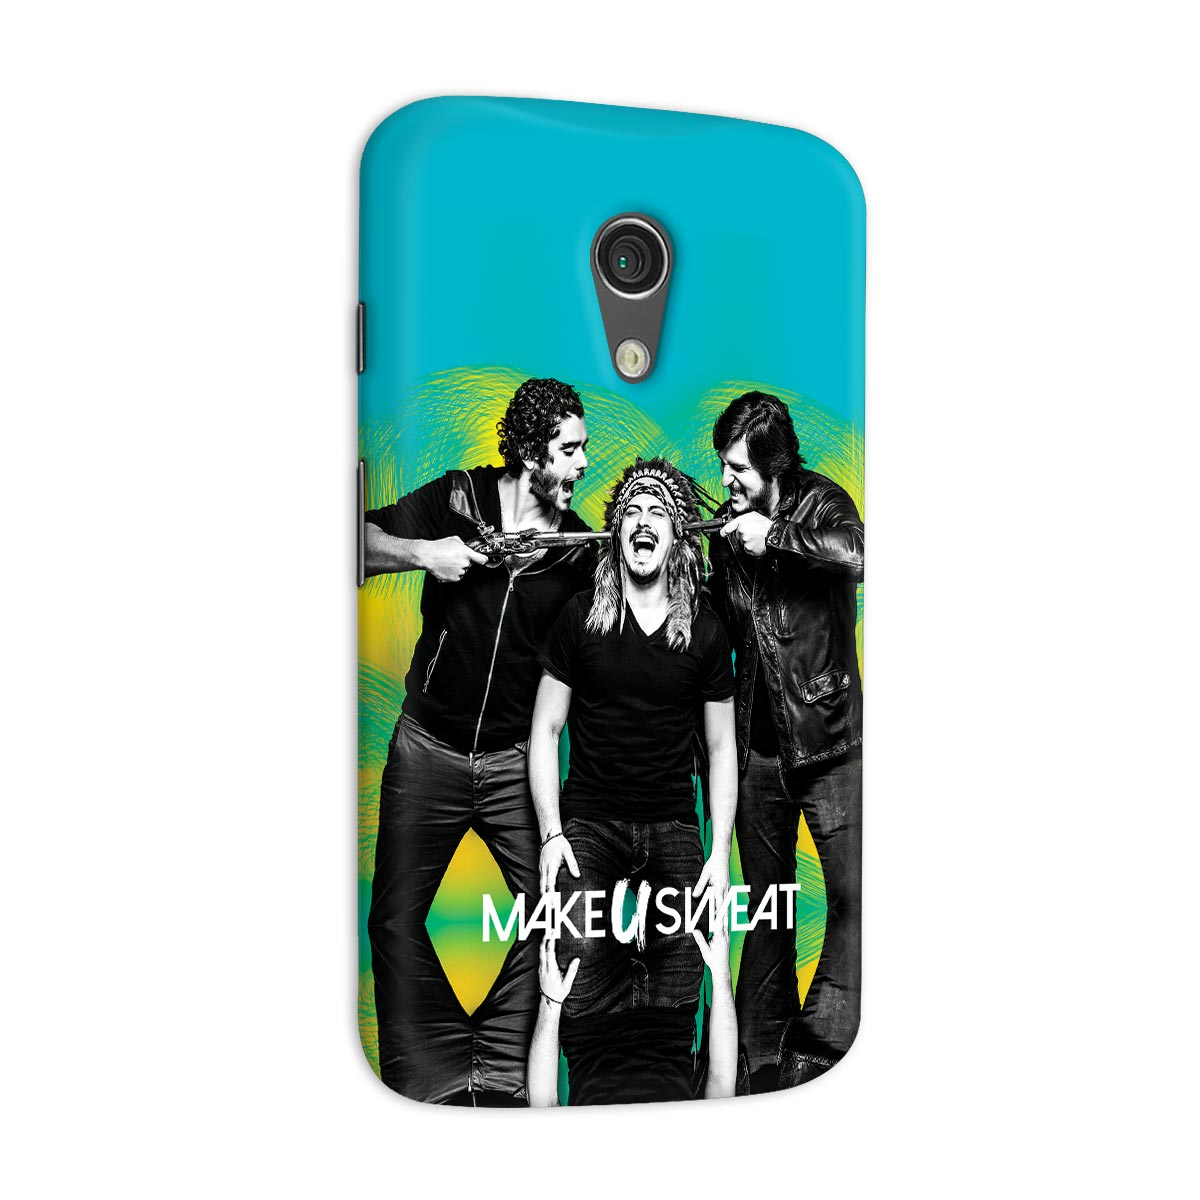 Capa para Motorola Moto G 2 Make U Sweat Foto